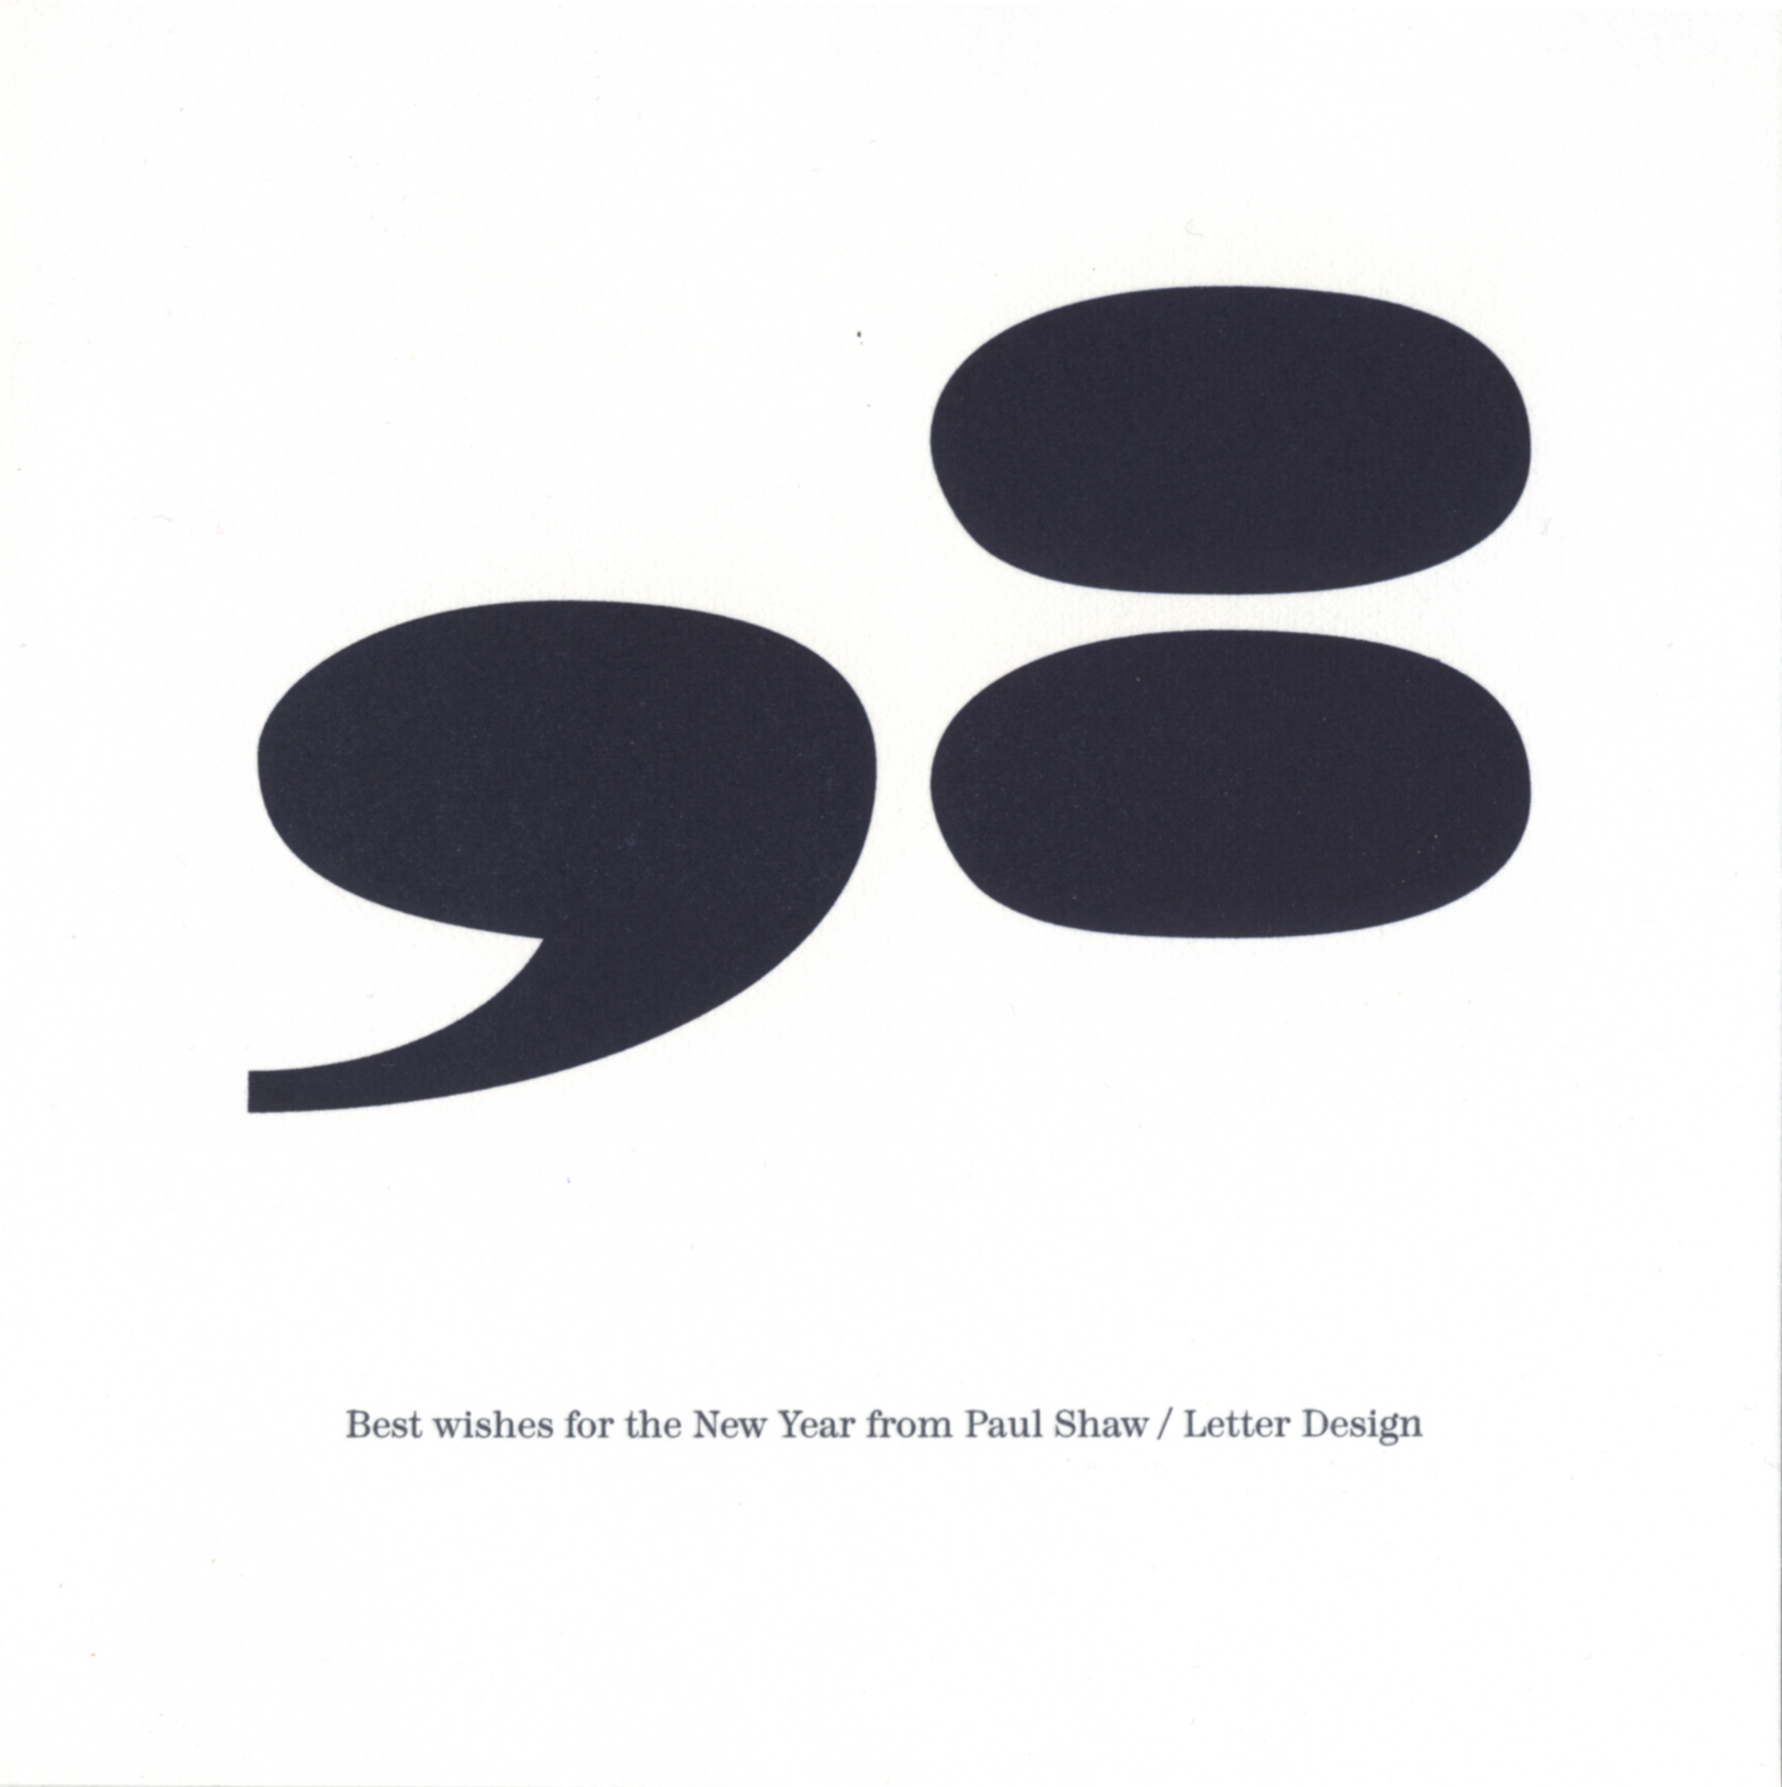 Super-sized punctuation from Madrone, one of the Adobe Wood Types, dominates Shaw's 1998 New Year's greeting.